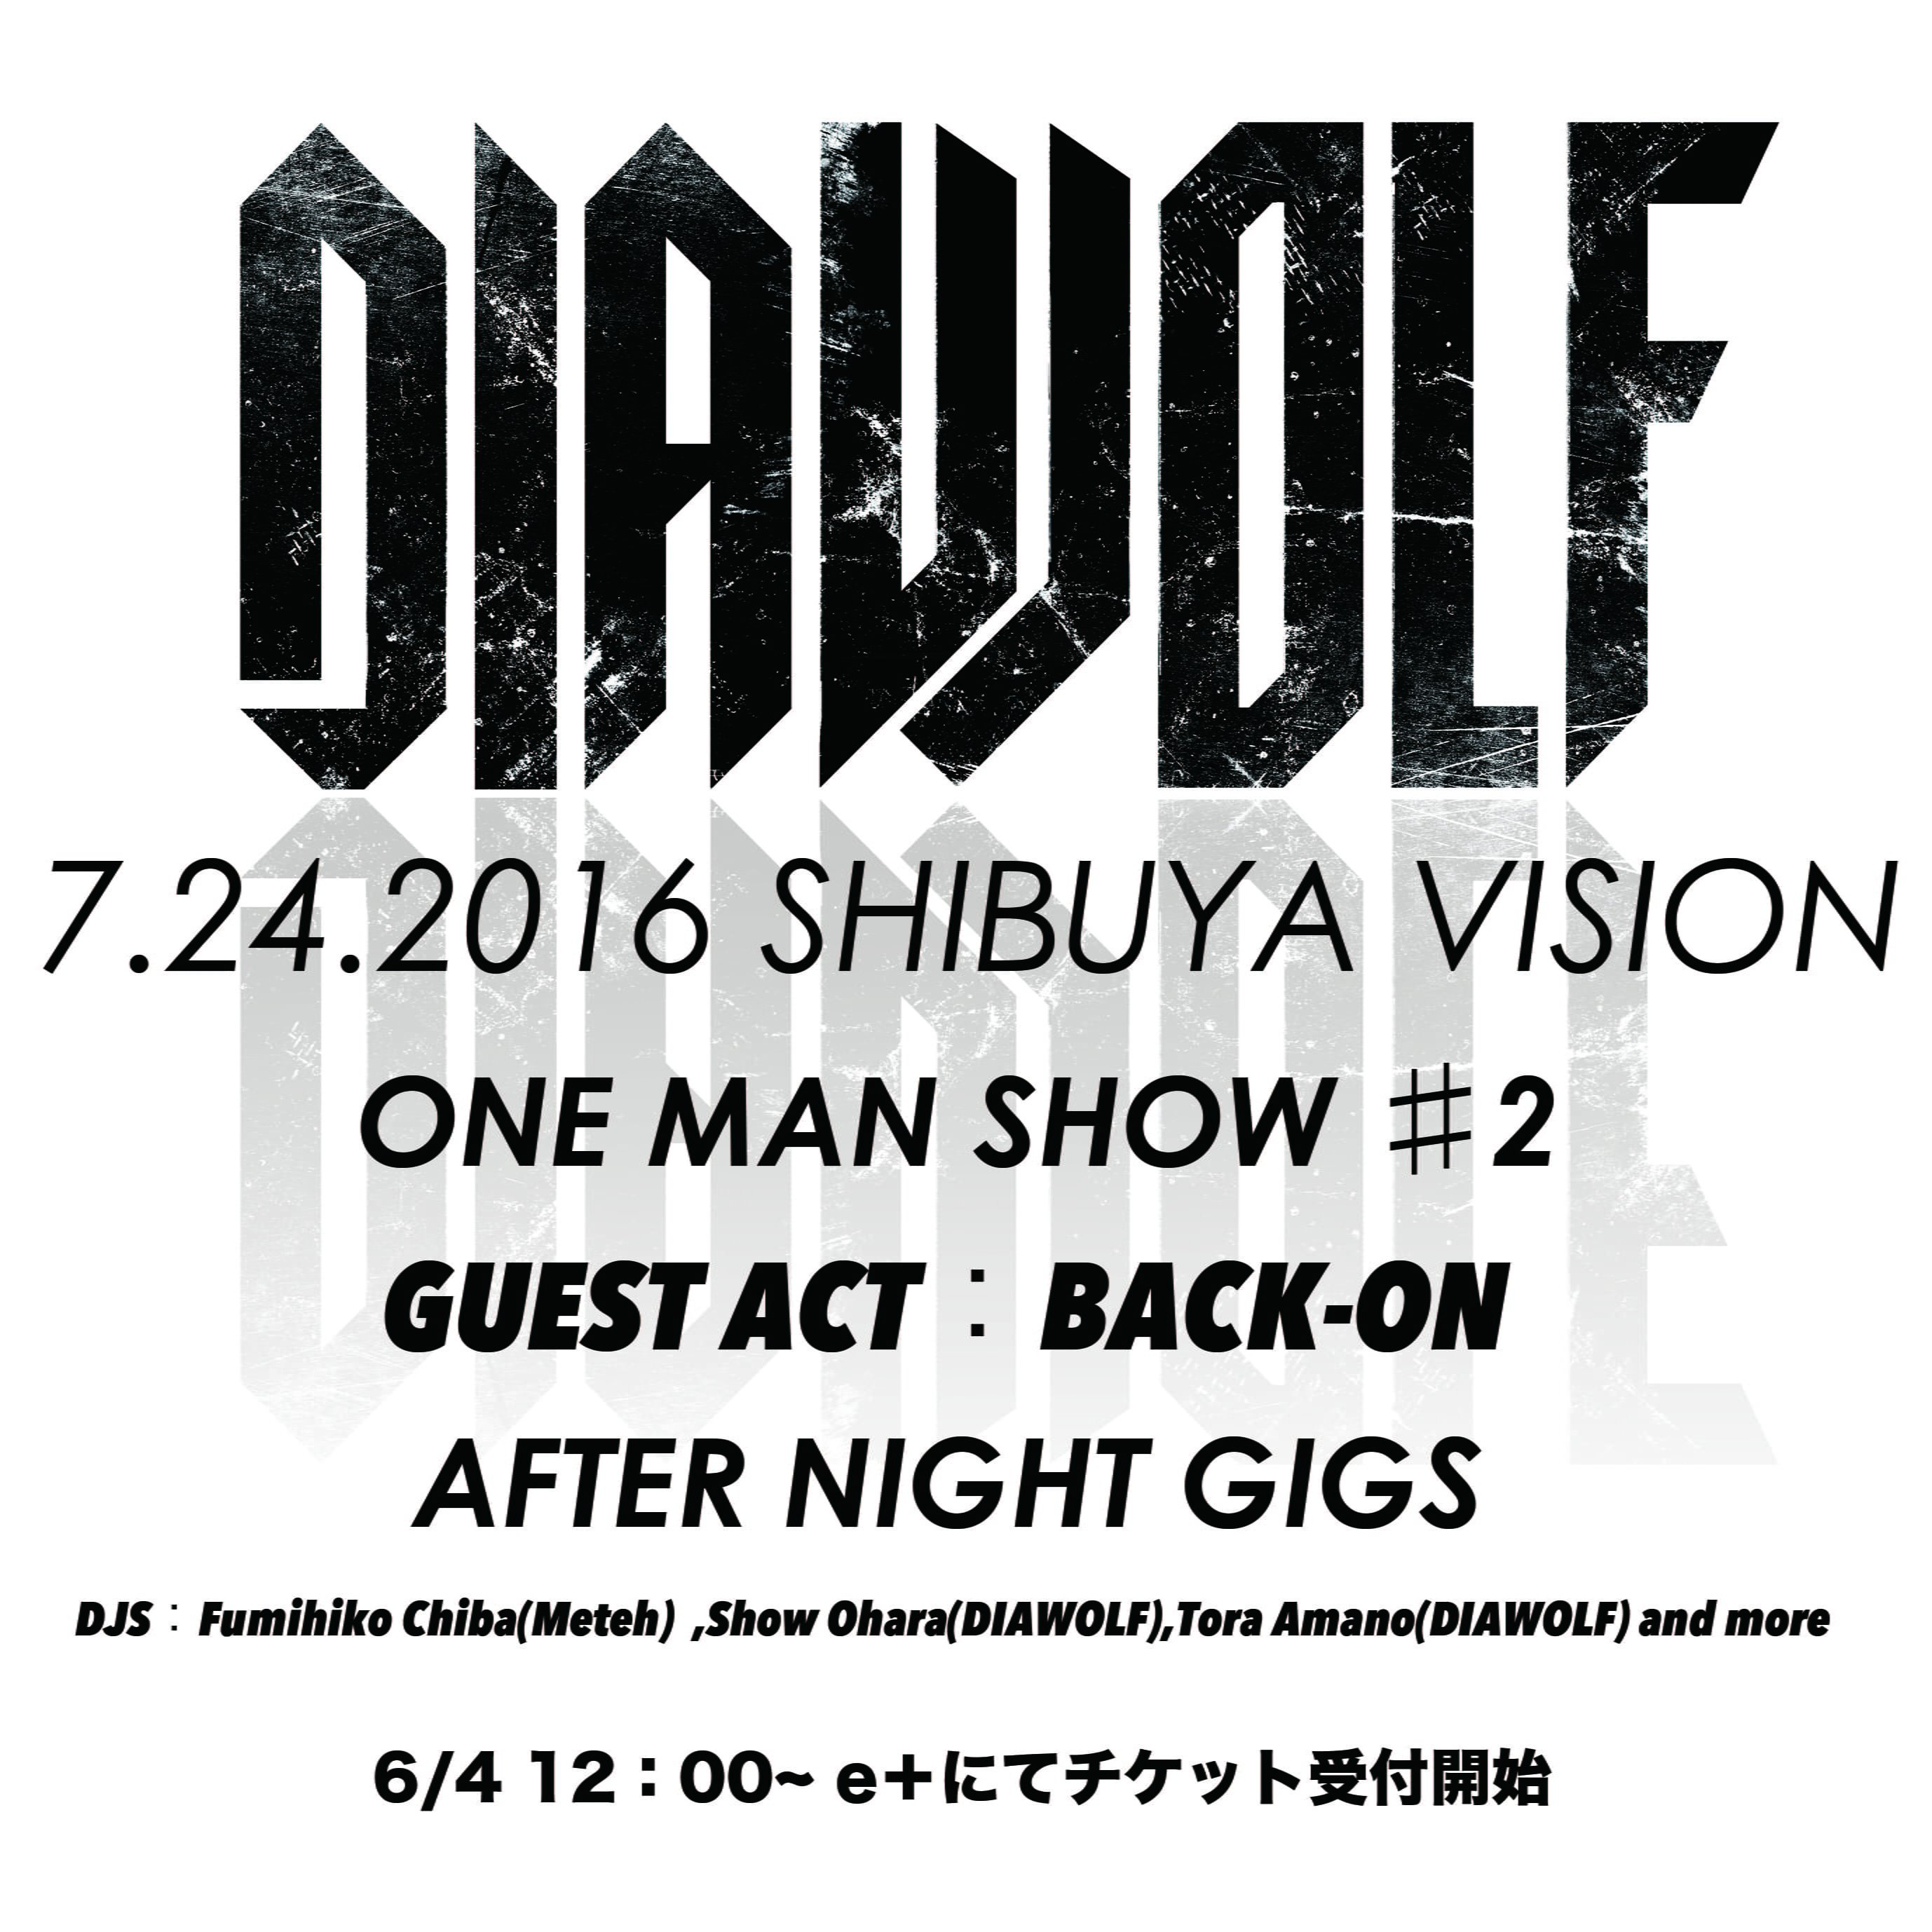 DIAWOLF ONE MAN SHOW ♯2 AFTER NIGHT GIGS